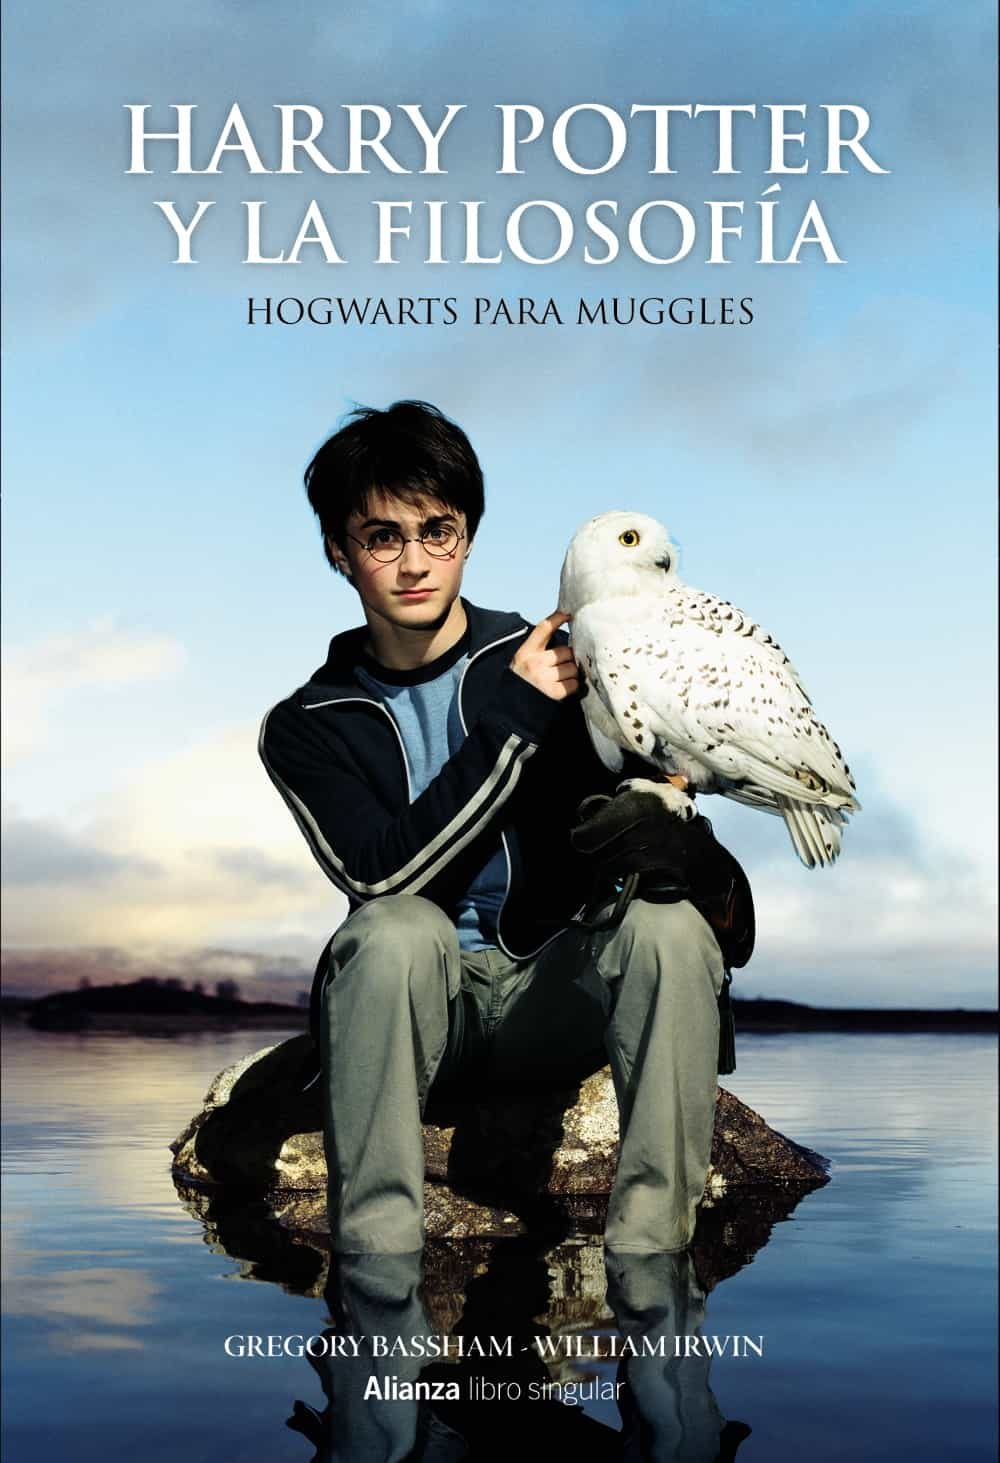 Leer Libros De Harry Potter Online Gratis Harry Potter Y La Filosofia William Irwin Comprar Libro 9788441538566